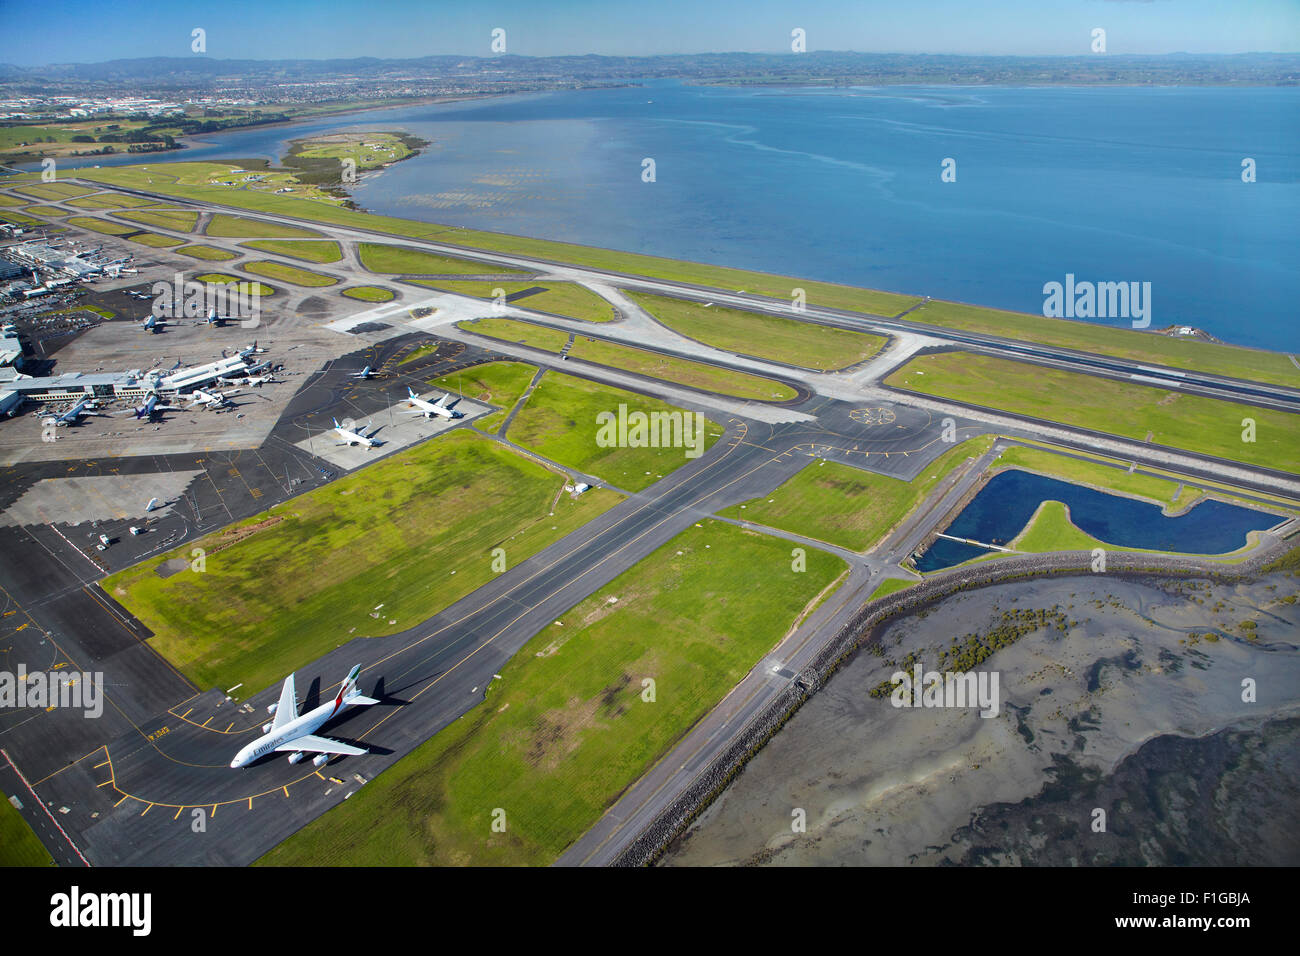 Emirates Airbus A380 and runways at Auckland Airport, North Island, New Zealand - aerial - Stock Image